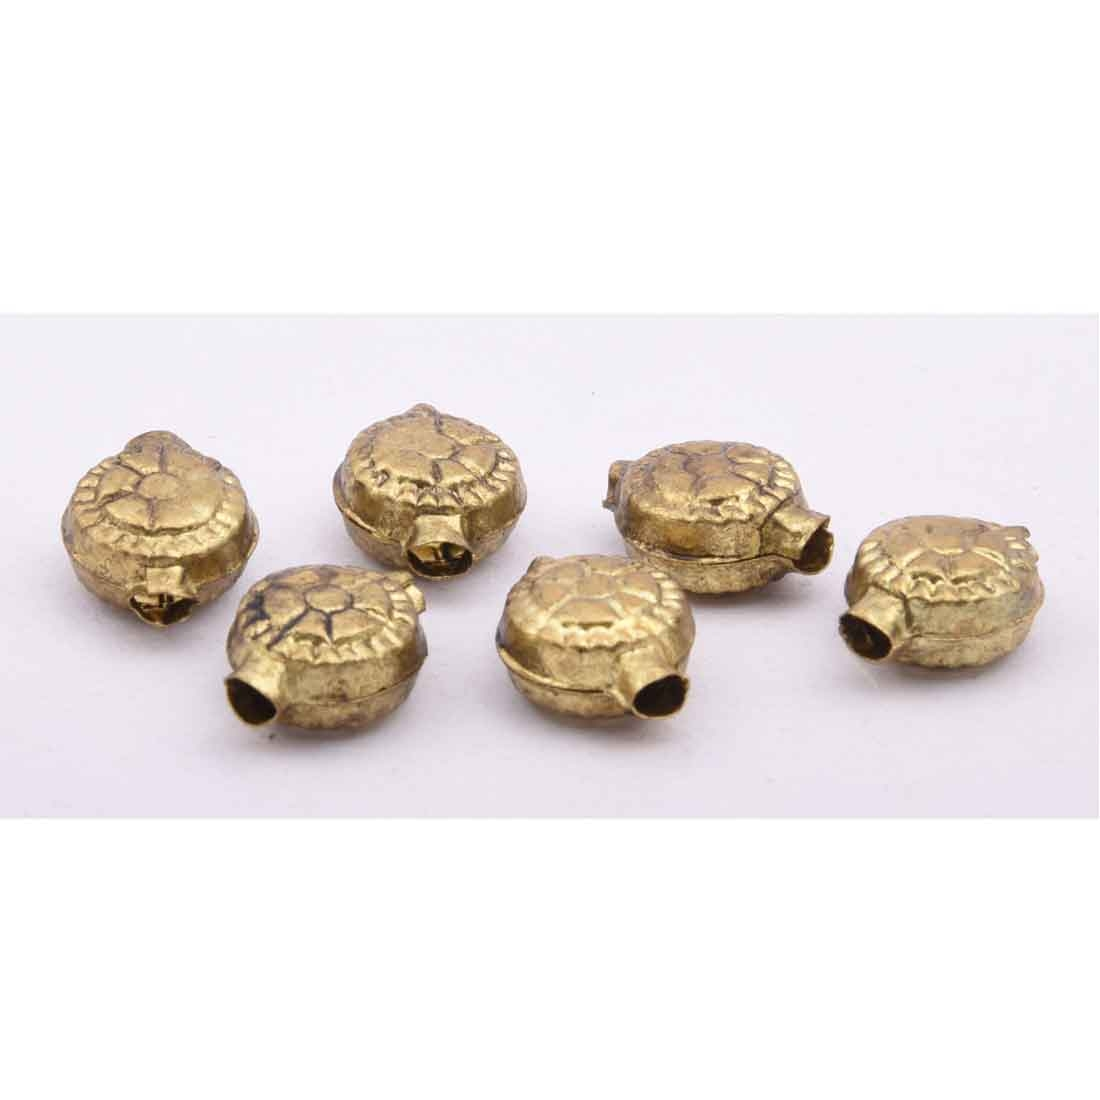 Beads India 1700048  Handcrafted Metal Beads/Discounts Above 500 pcs